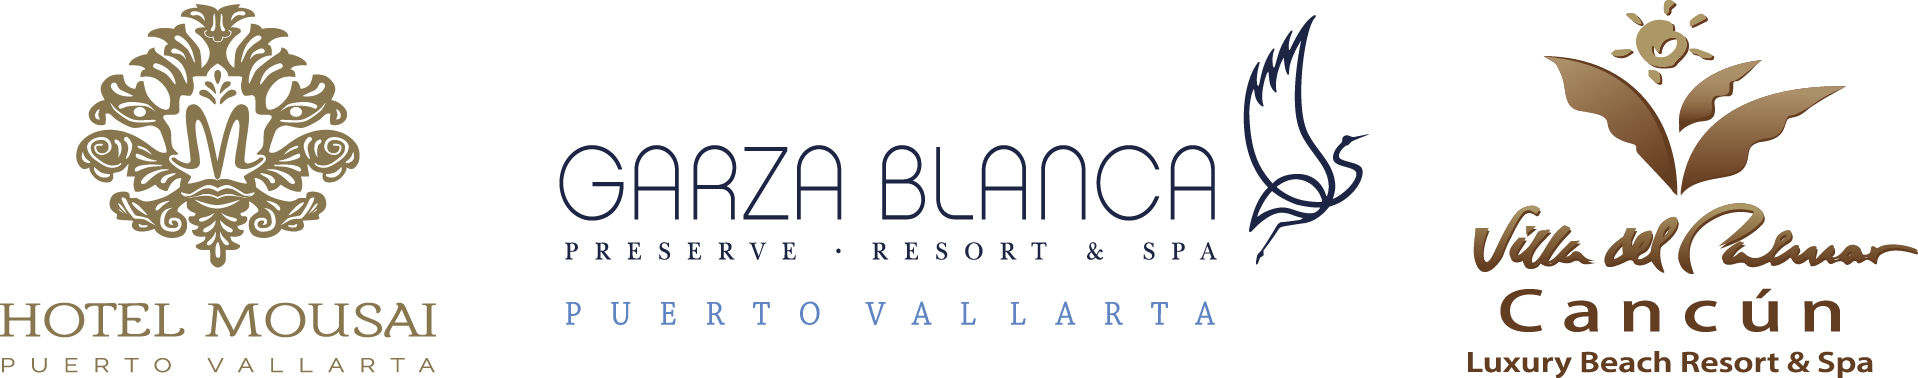 Referral Resorts Puerto Vallarta & Cancun